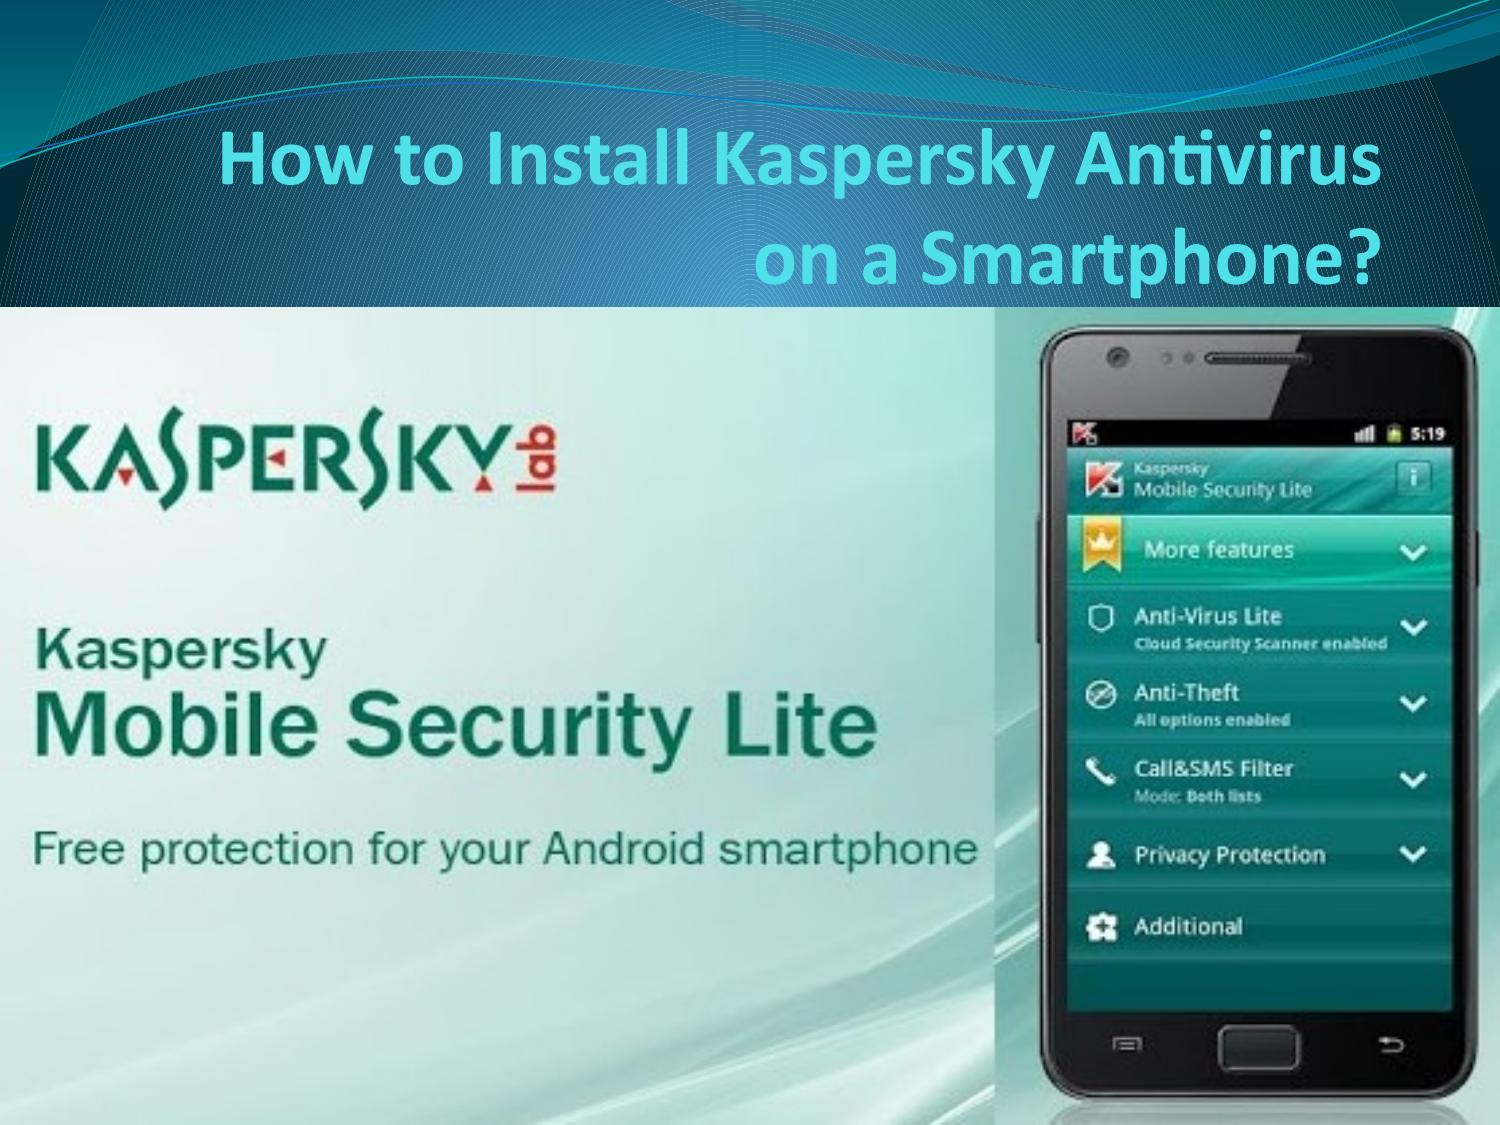 How to install kaspersky antivirus on a smartphone? by Malia Young